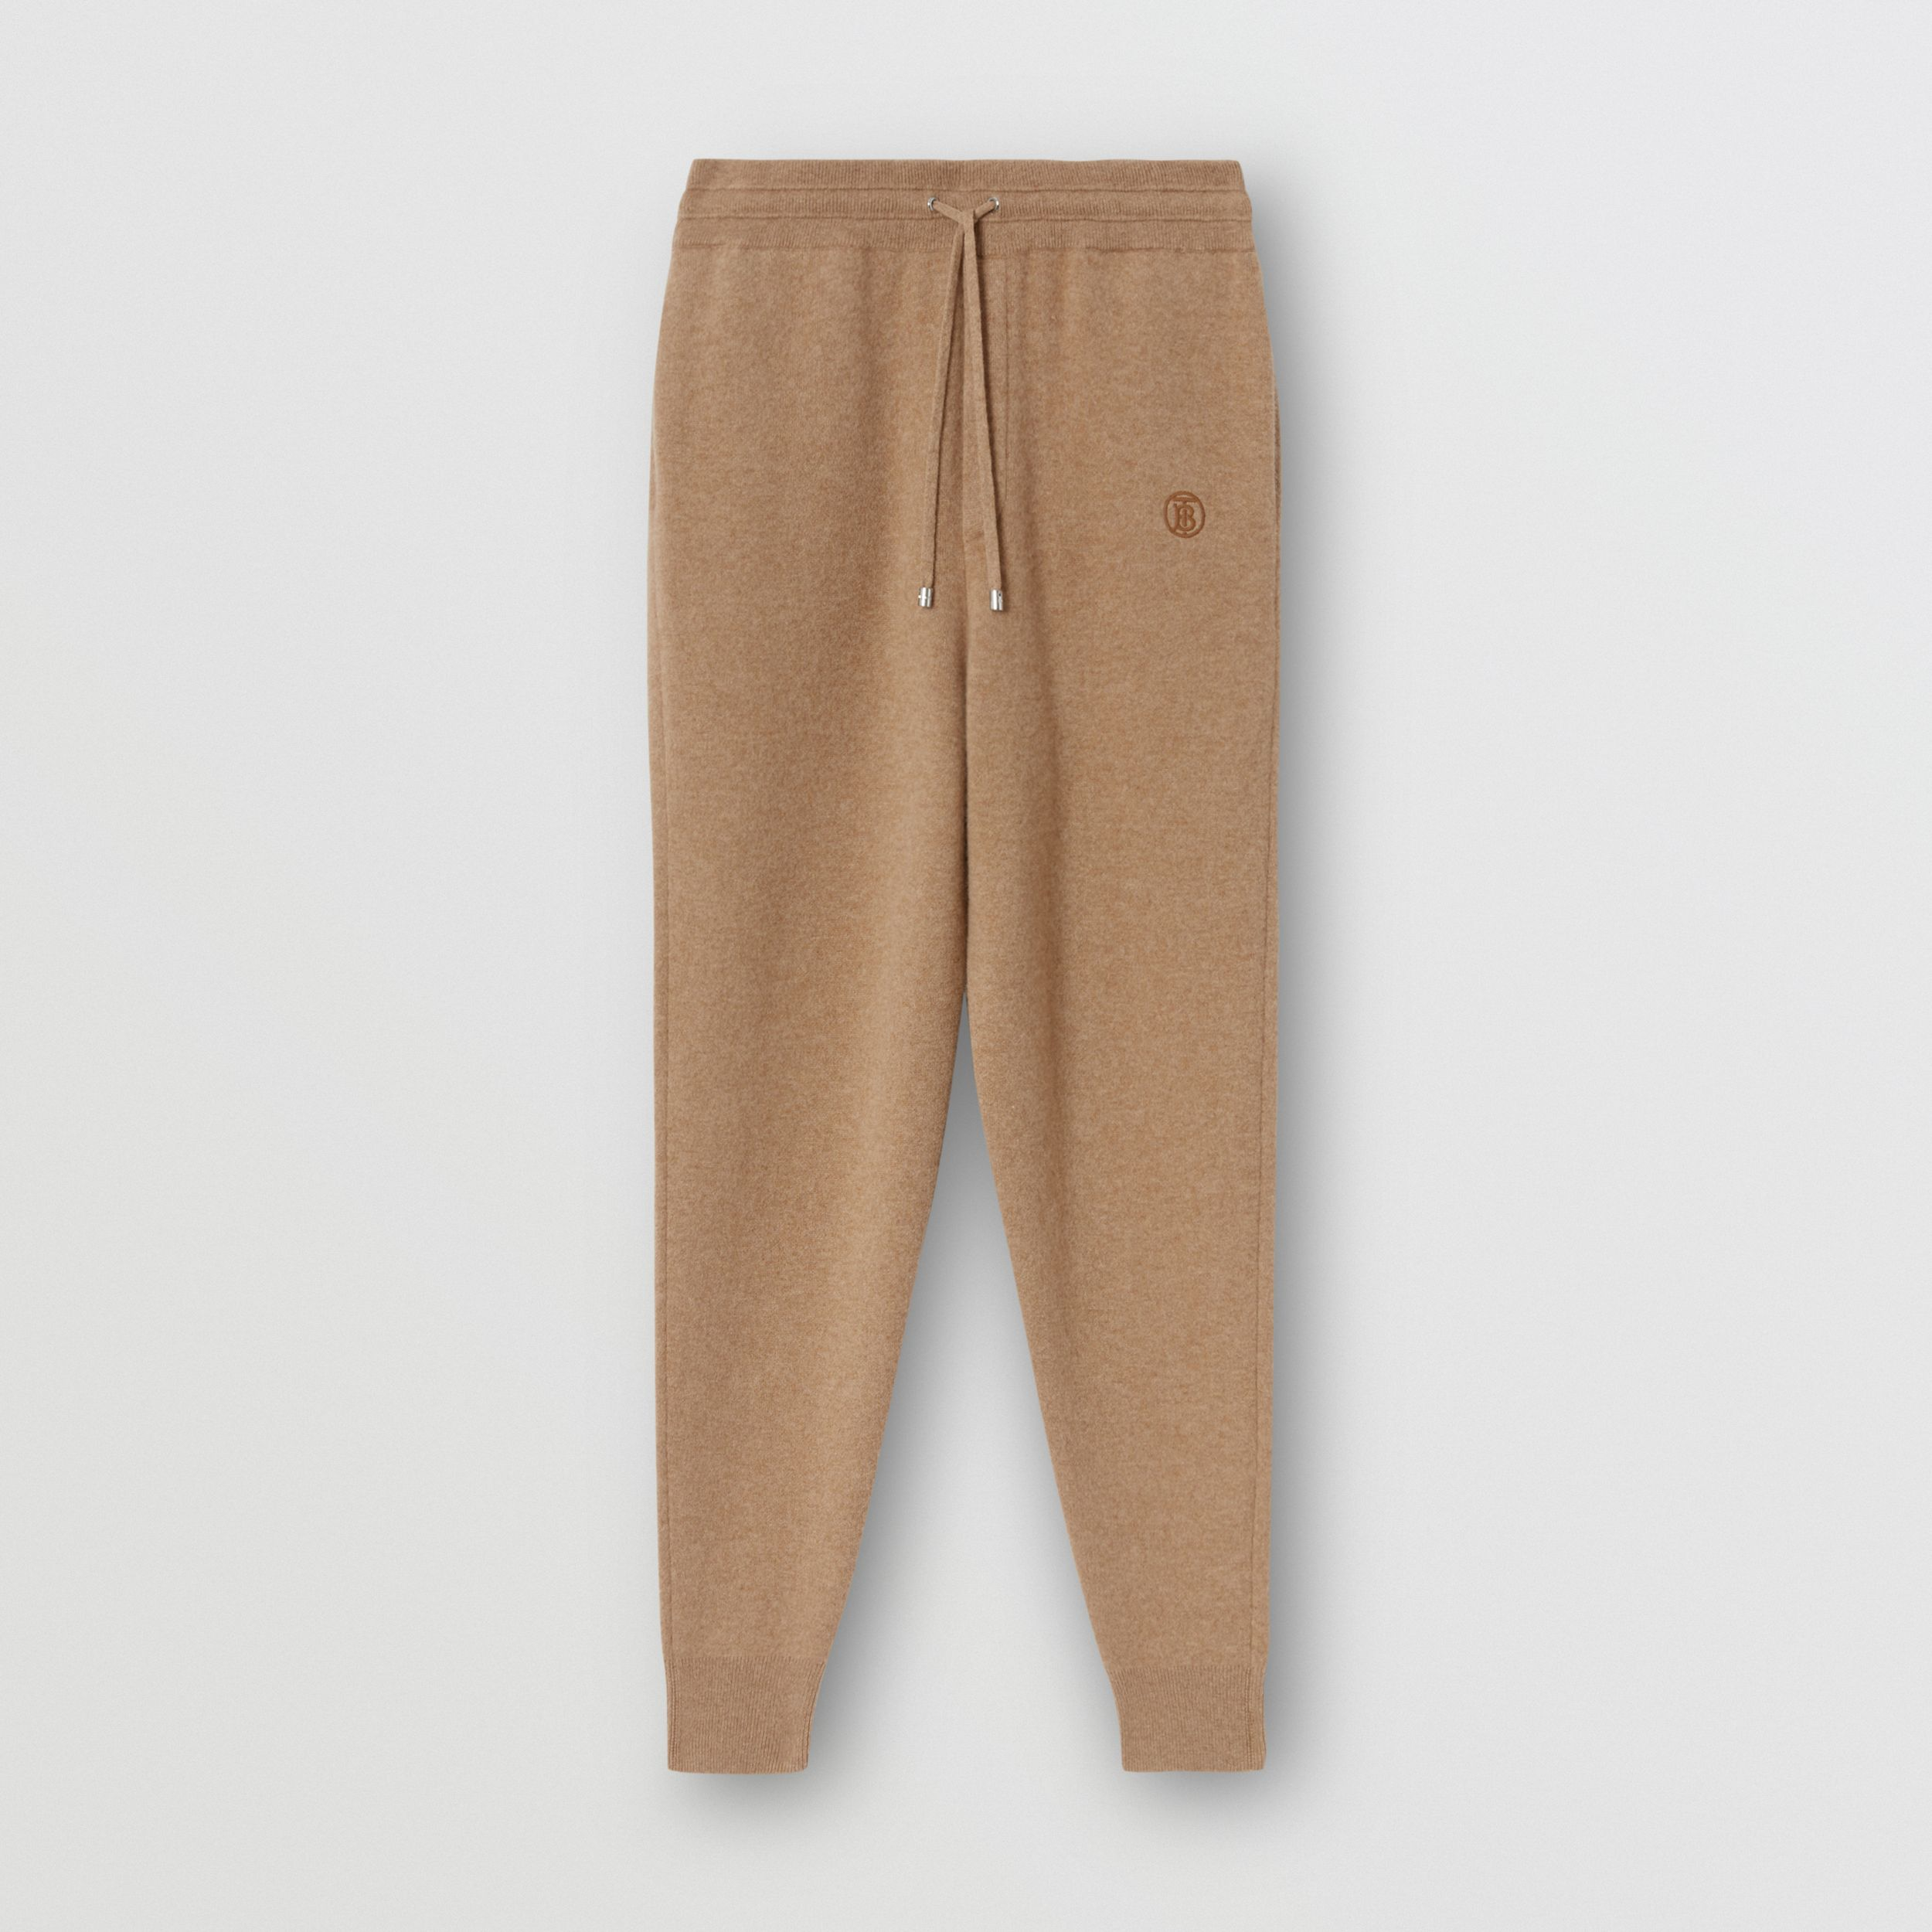 Monogram Motif Cashmere Blend Jogging Pants in Pale Coffee - Men | Burberry Hong Kong S.A.R. - 4